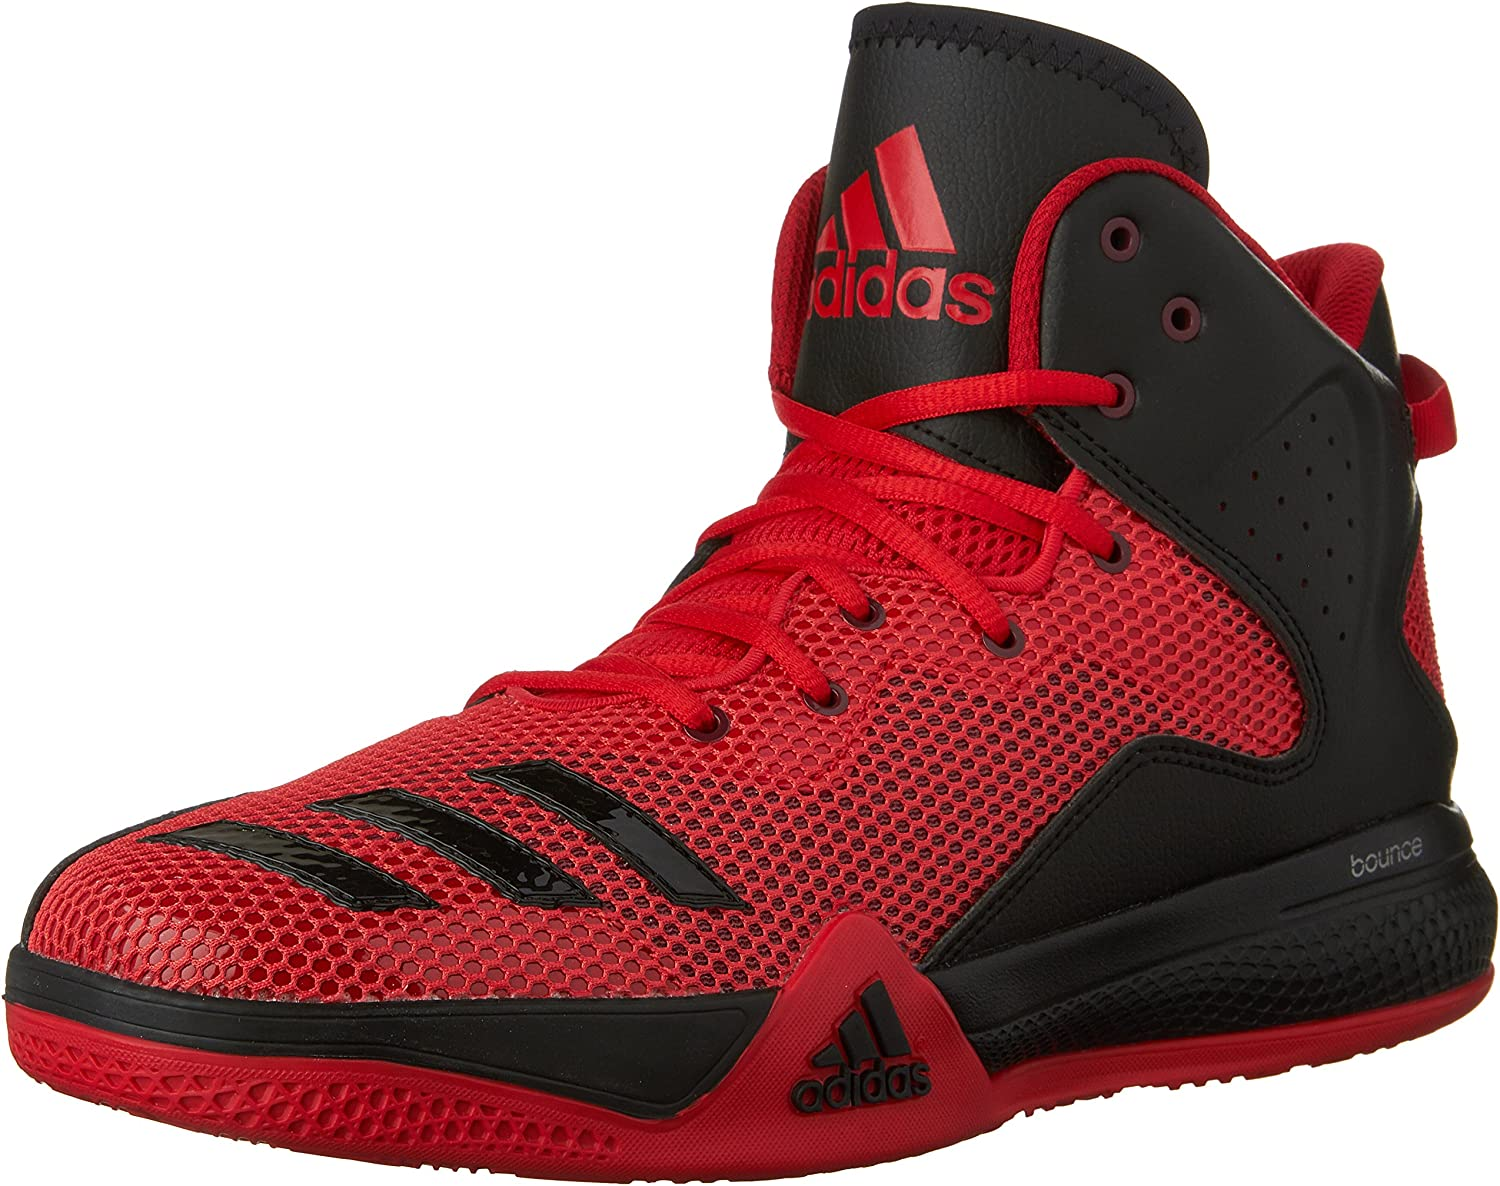 Adidas Men's DT Bball Mid Basketball shoes